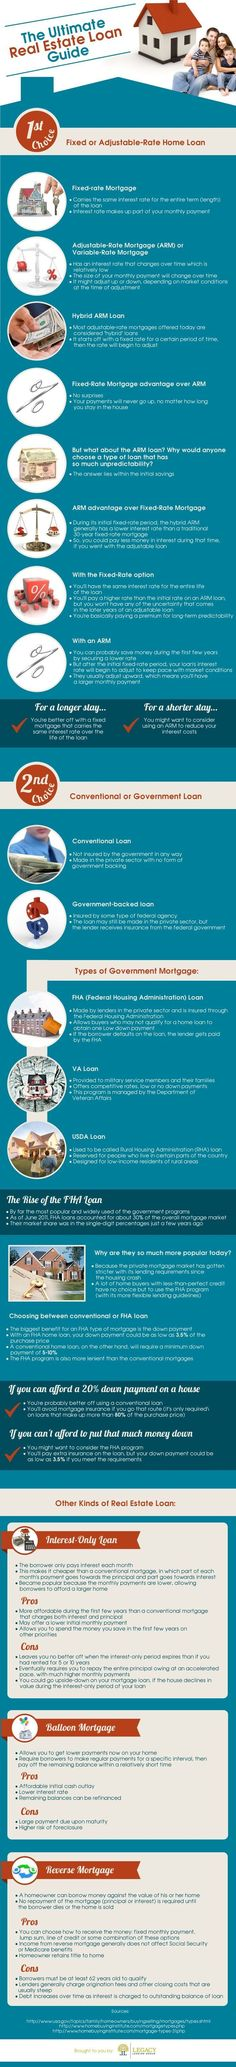 Understanding different types of mortgage loans. Definitely don - Mortgage Payment Calculator - Understanding different types of mortgage loans. Definitely don't need dp to do conventional loan though Online Mortgage, Mortgage Tips, Mortgage Offers, Refinance Mortgage, Mortgage Rates, Mortgage Amortization Calculator, Diet, Recipes